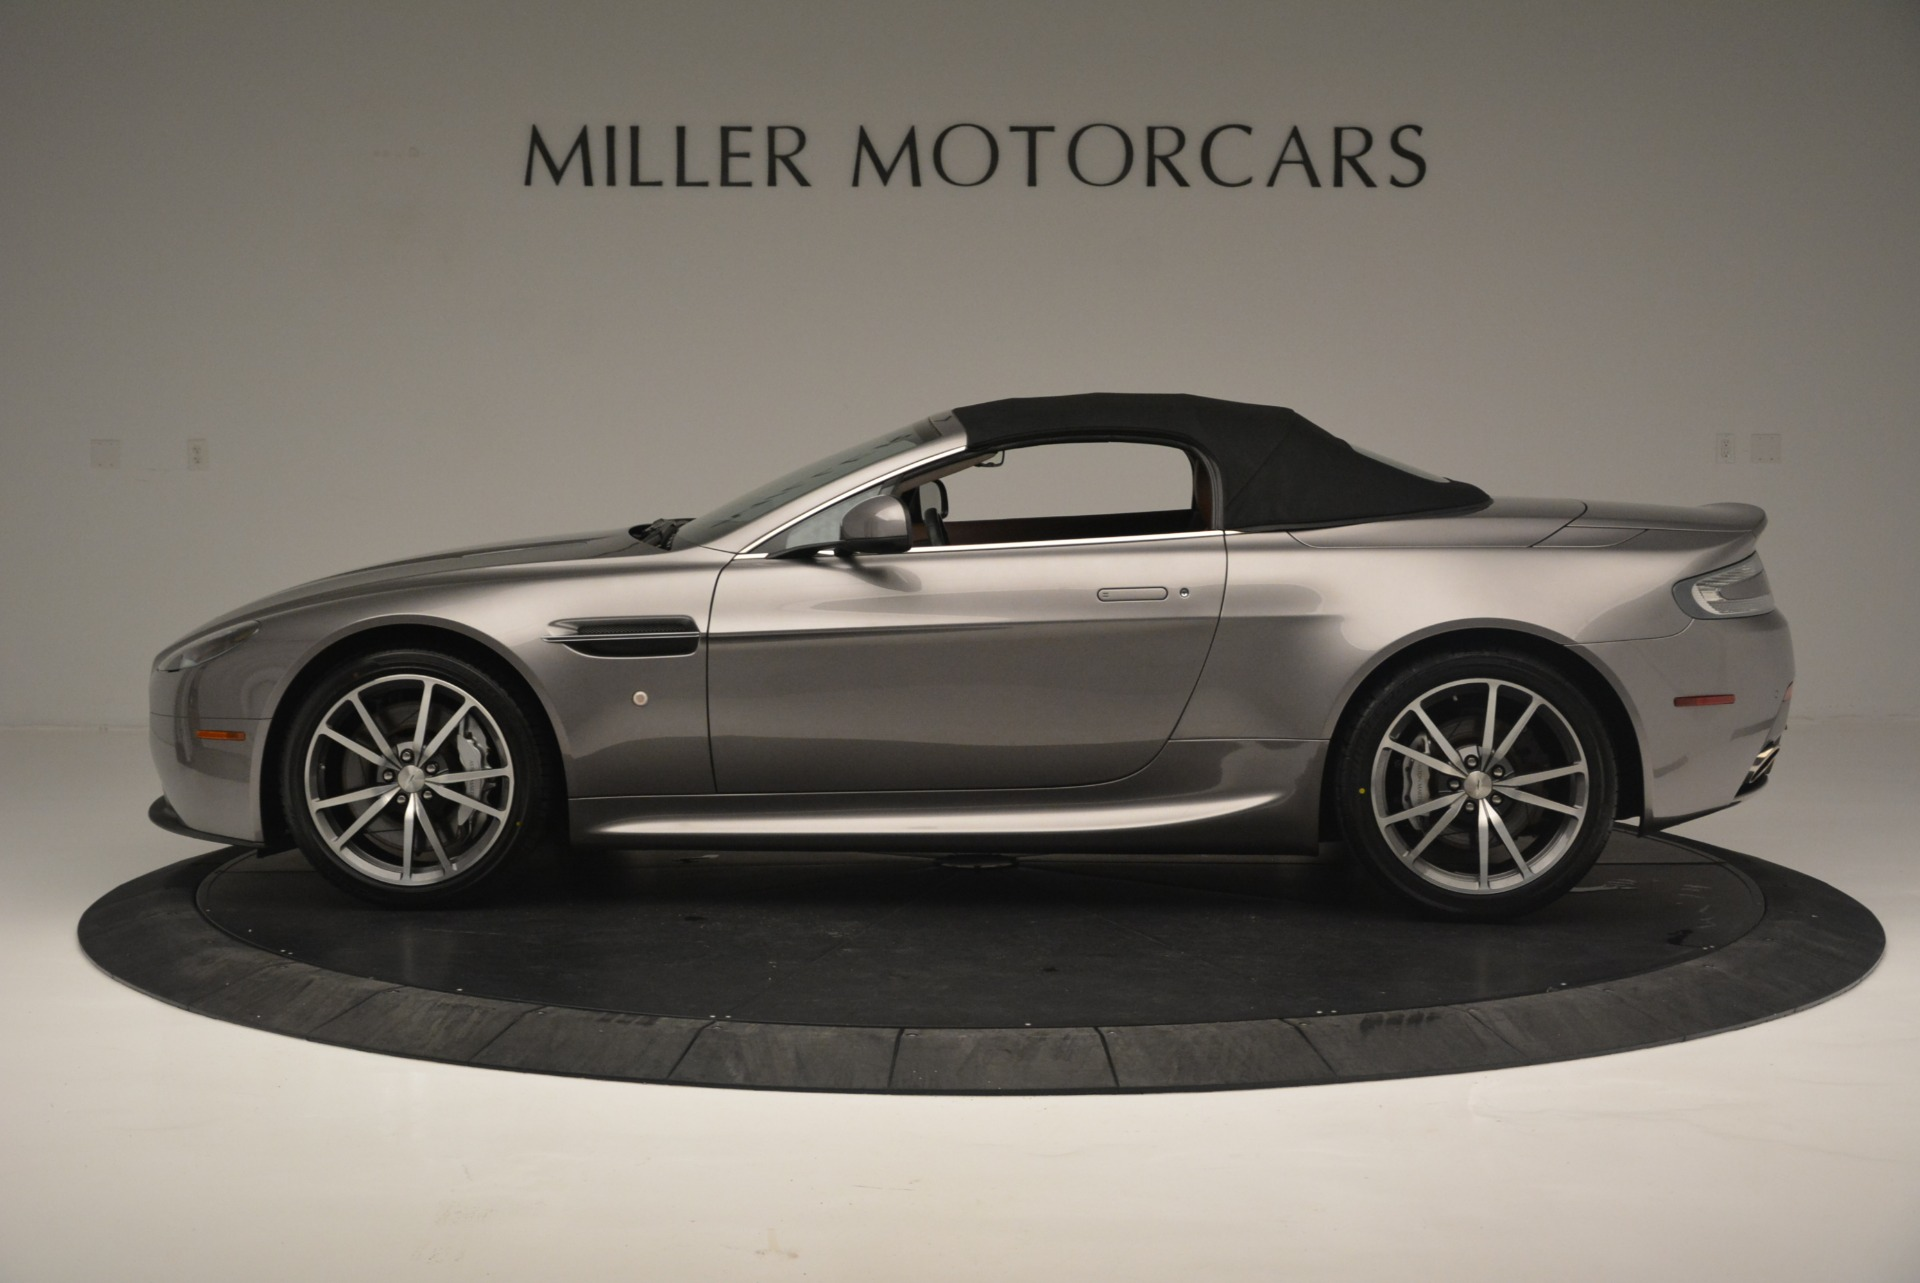 Used 2015 Aston Martin V8 Vantage Roadster For Sale In Greenwich, CT 2463_p15